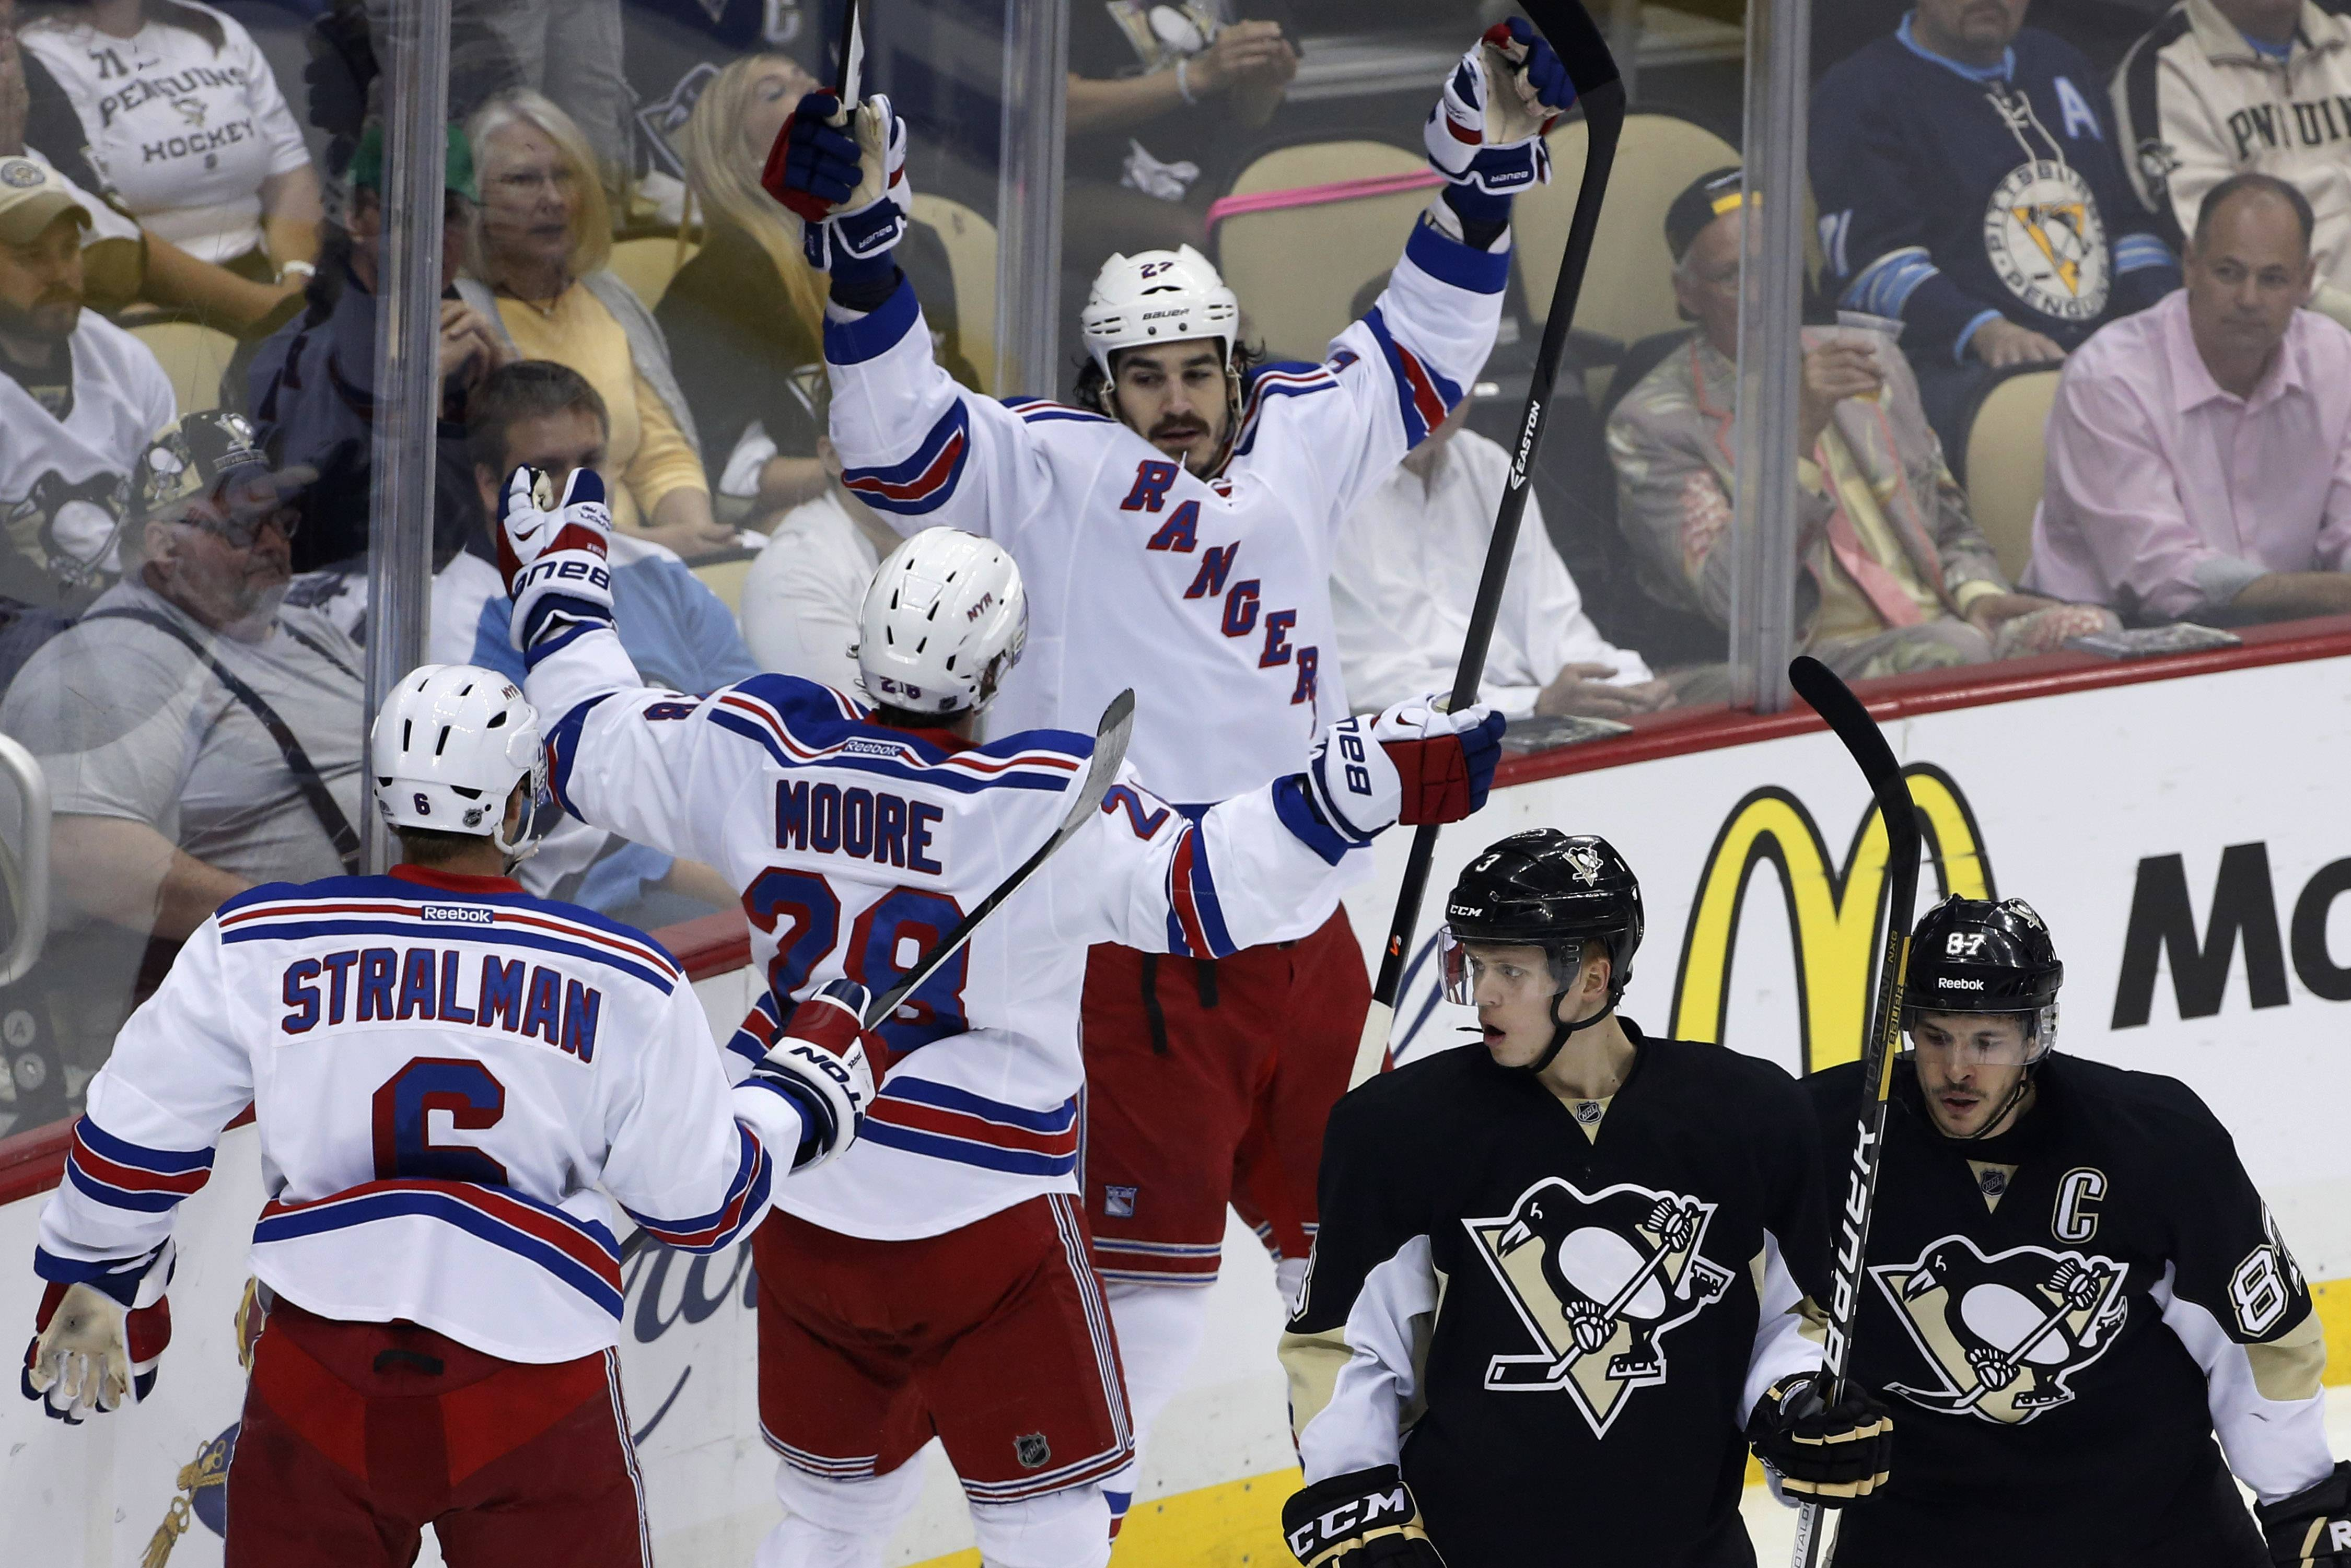 New York Rangers' Brian Boyle (22) celebrates his goal with teammates Anton Stralman (6) and Dominic Moore as Pittsburgh Penguins' Sidney Crosby (87) and Olli Maatta (3) skate back to their bench in the first period of Game 7 of a second-round NHL playoff hockey series, in Pittsburgh on Tuesday, May 13, 2014.